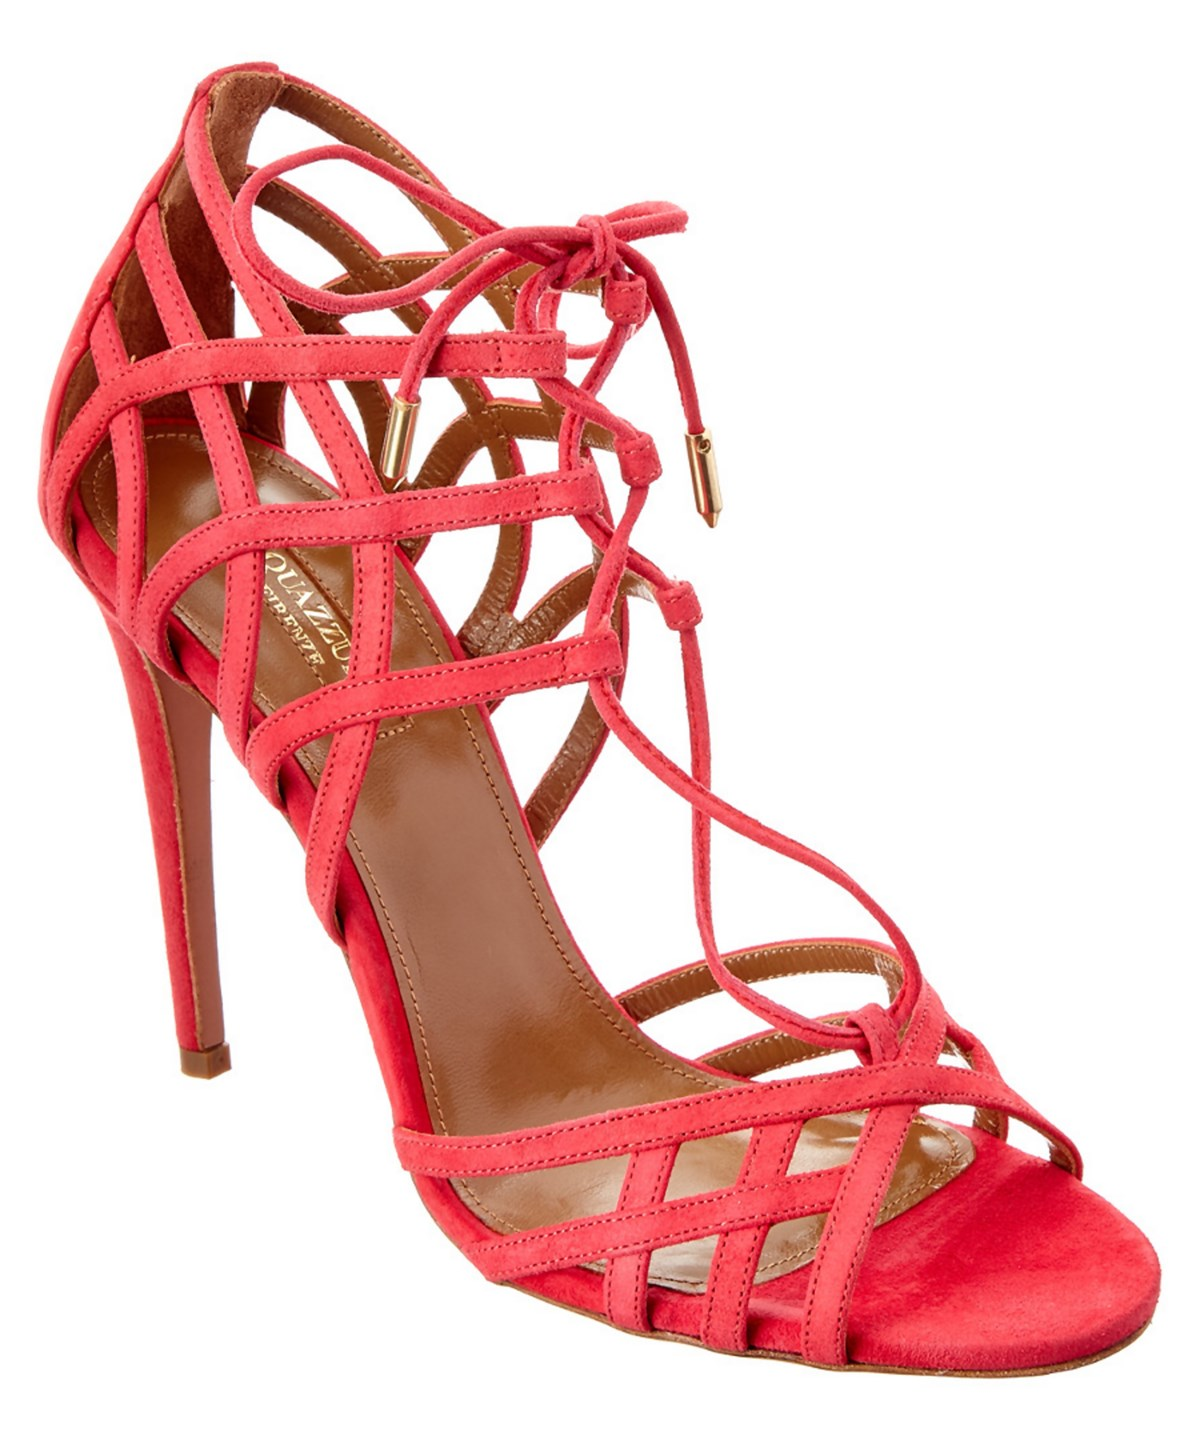 Aquazzura Ginger 105 Lace Up Suede Sandal' In Sorbet